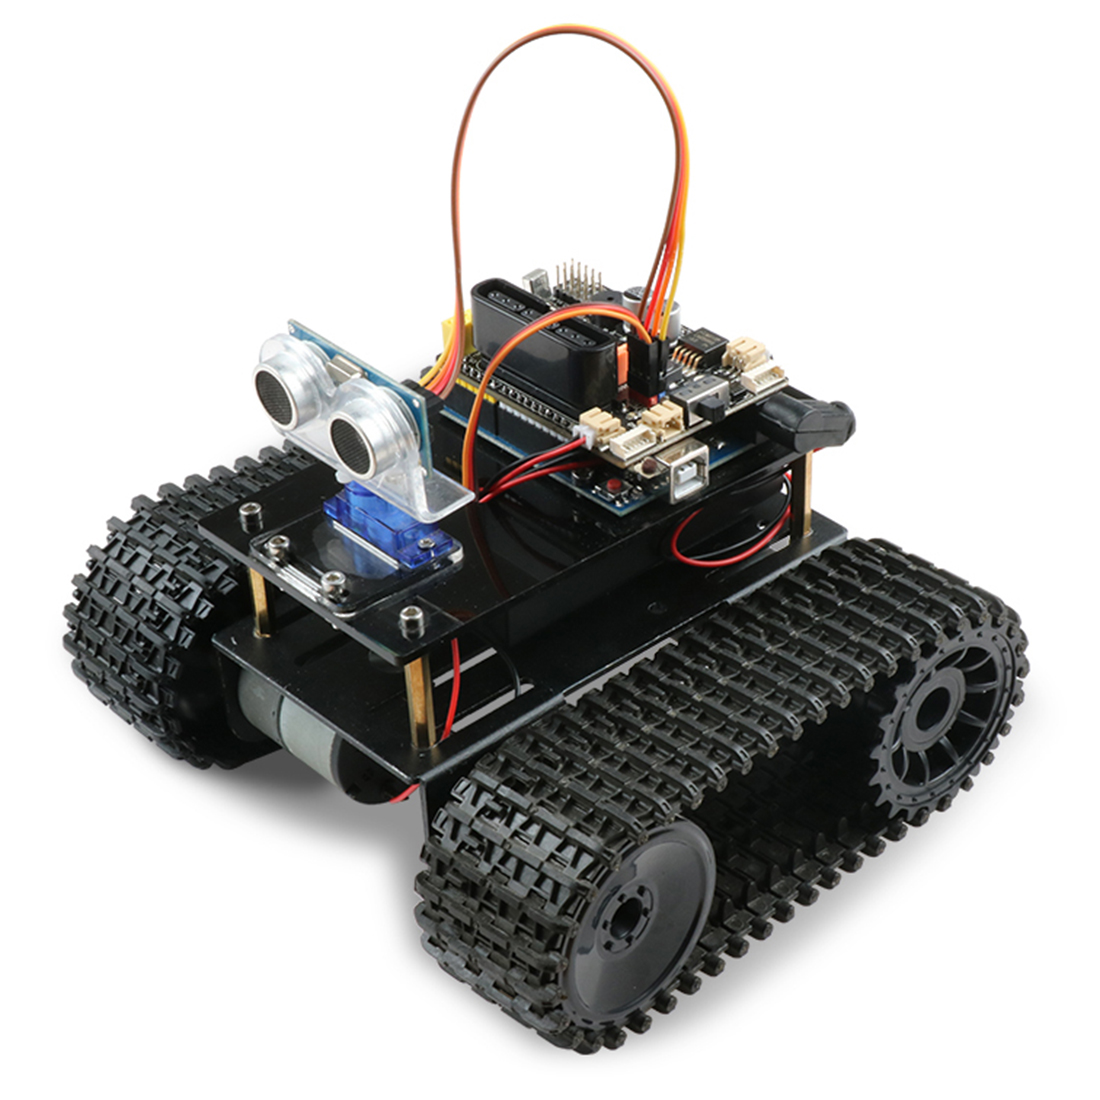 DIY Obstacle Avoidance Smart Programmable Robot Tank Educational Learning Kit For Arduino For UNO